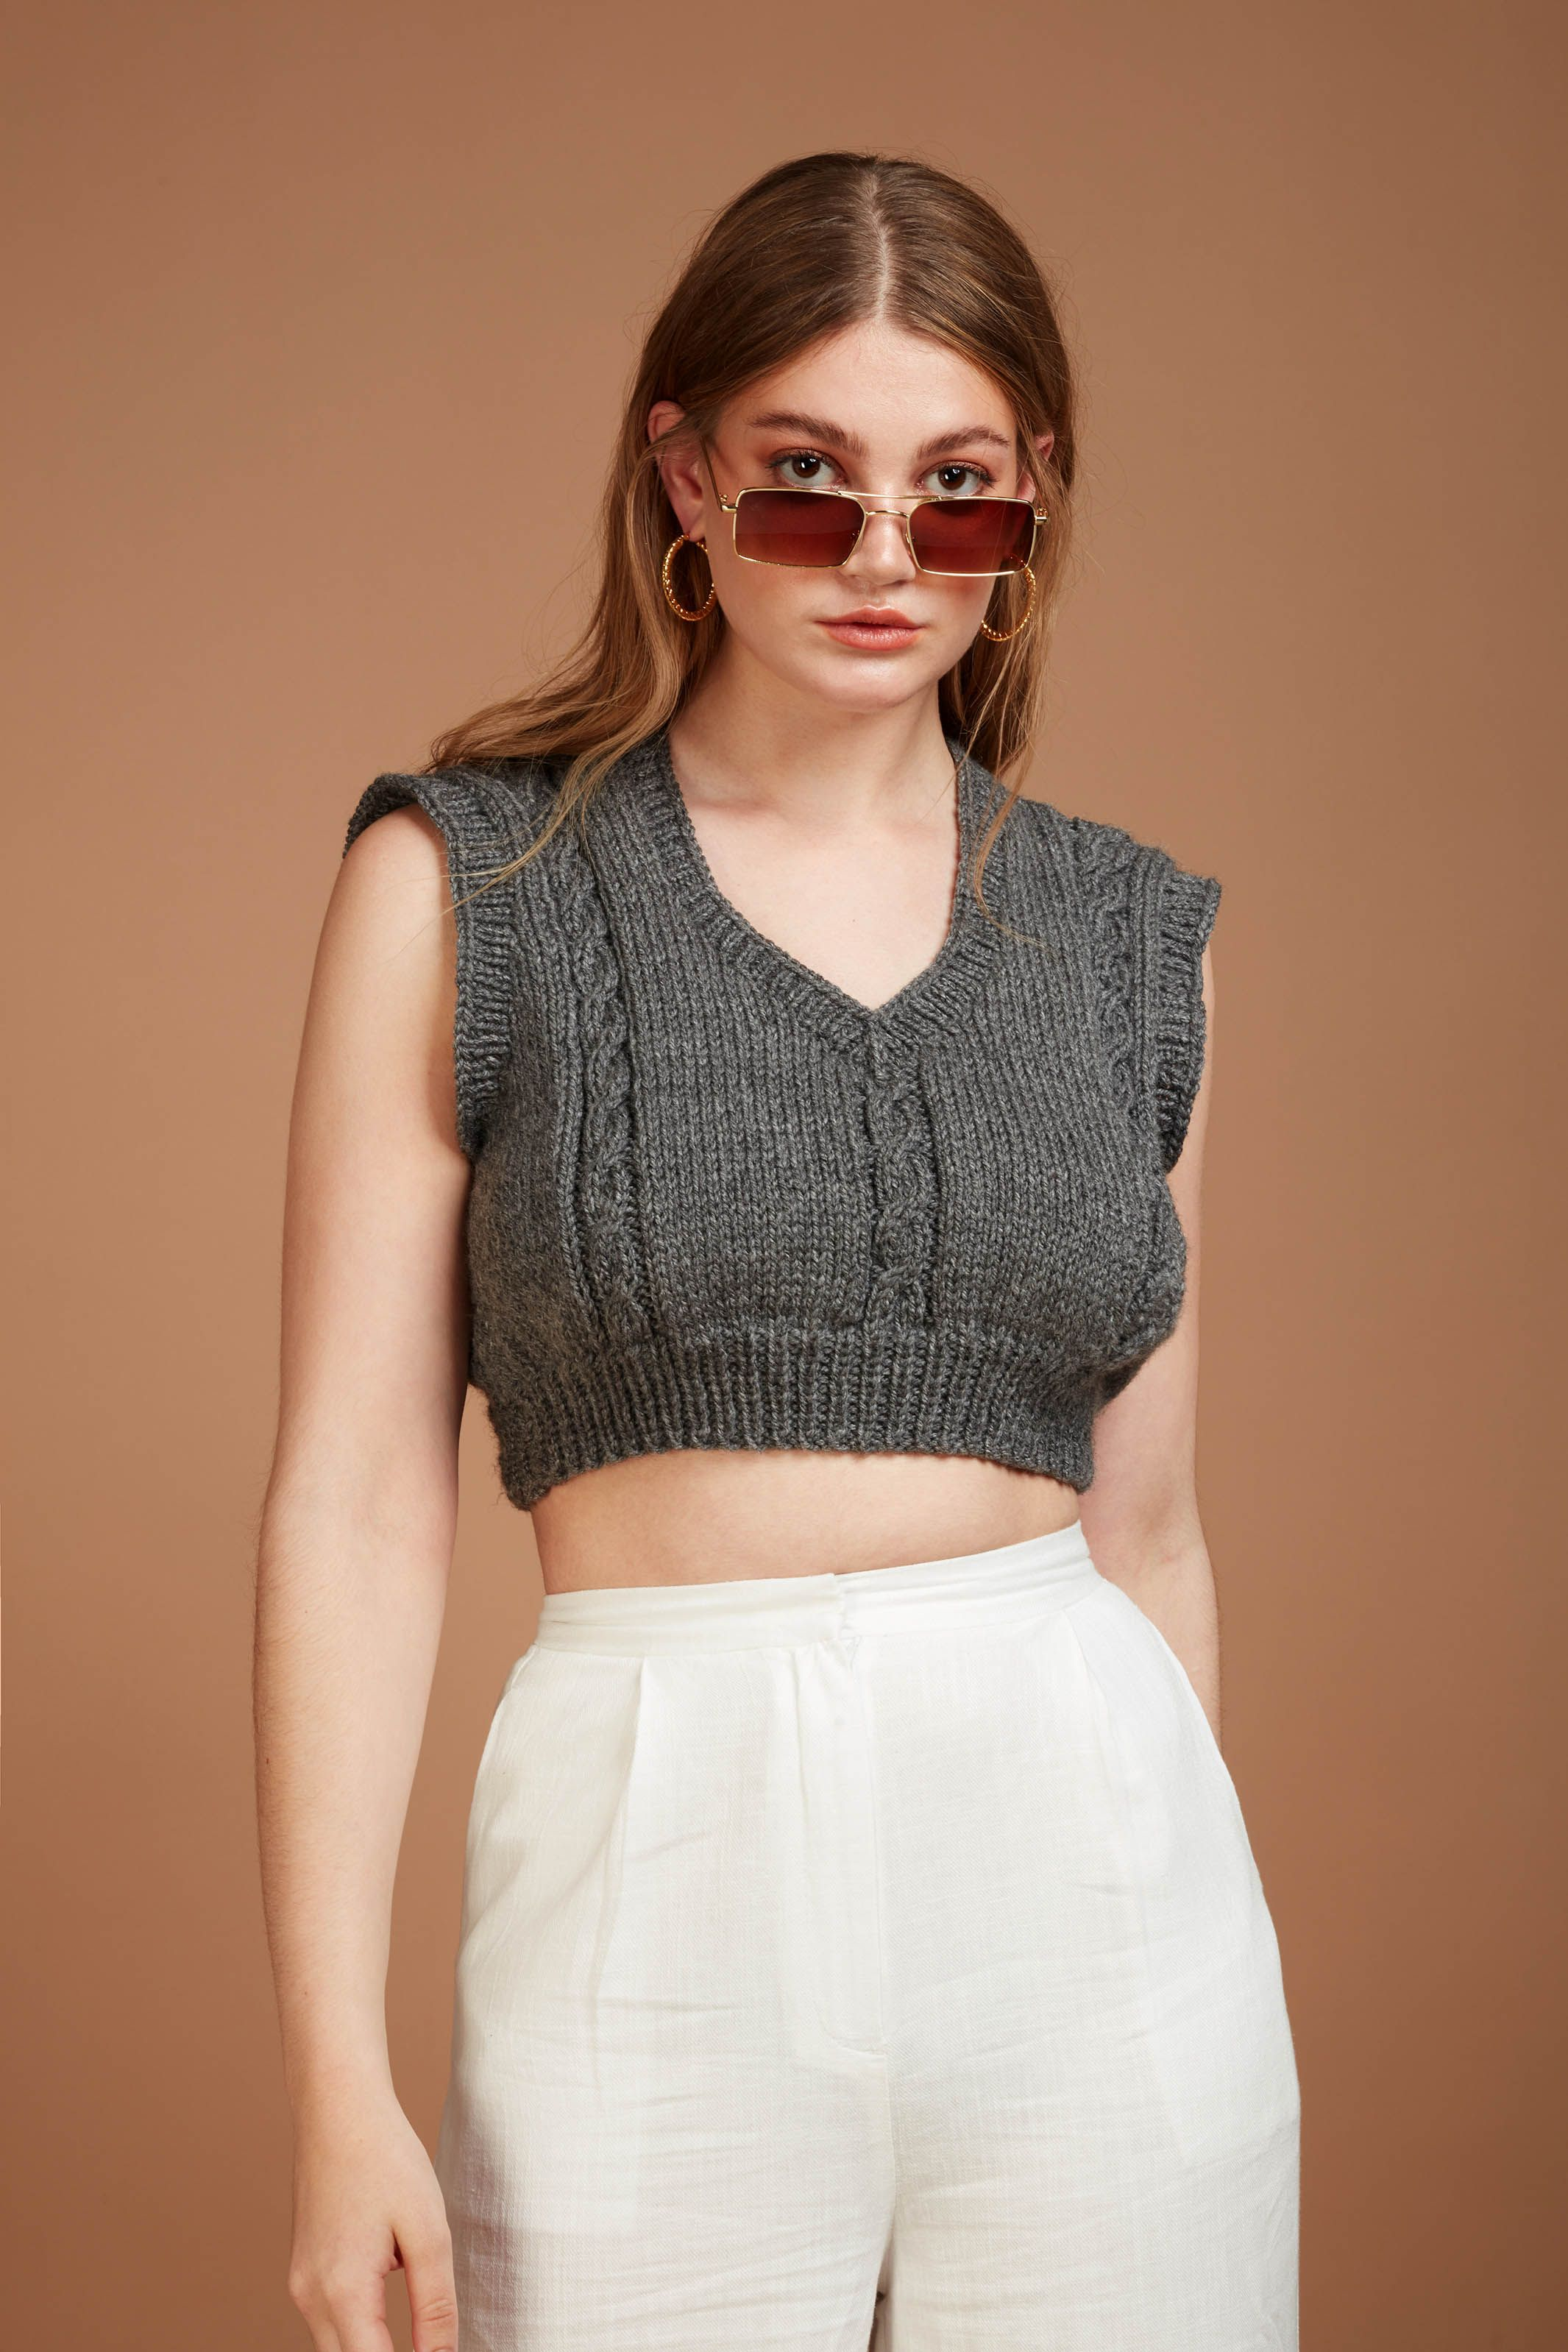 The Passionfruit Sweater